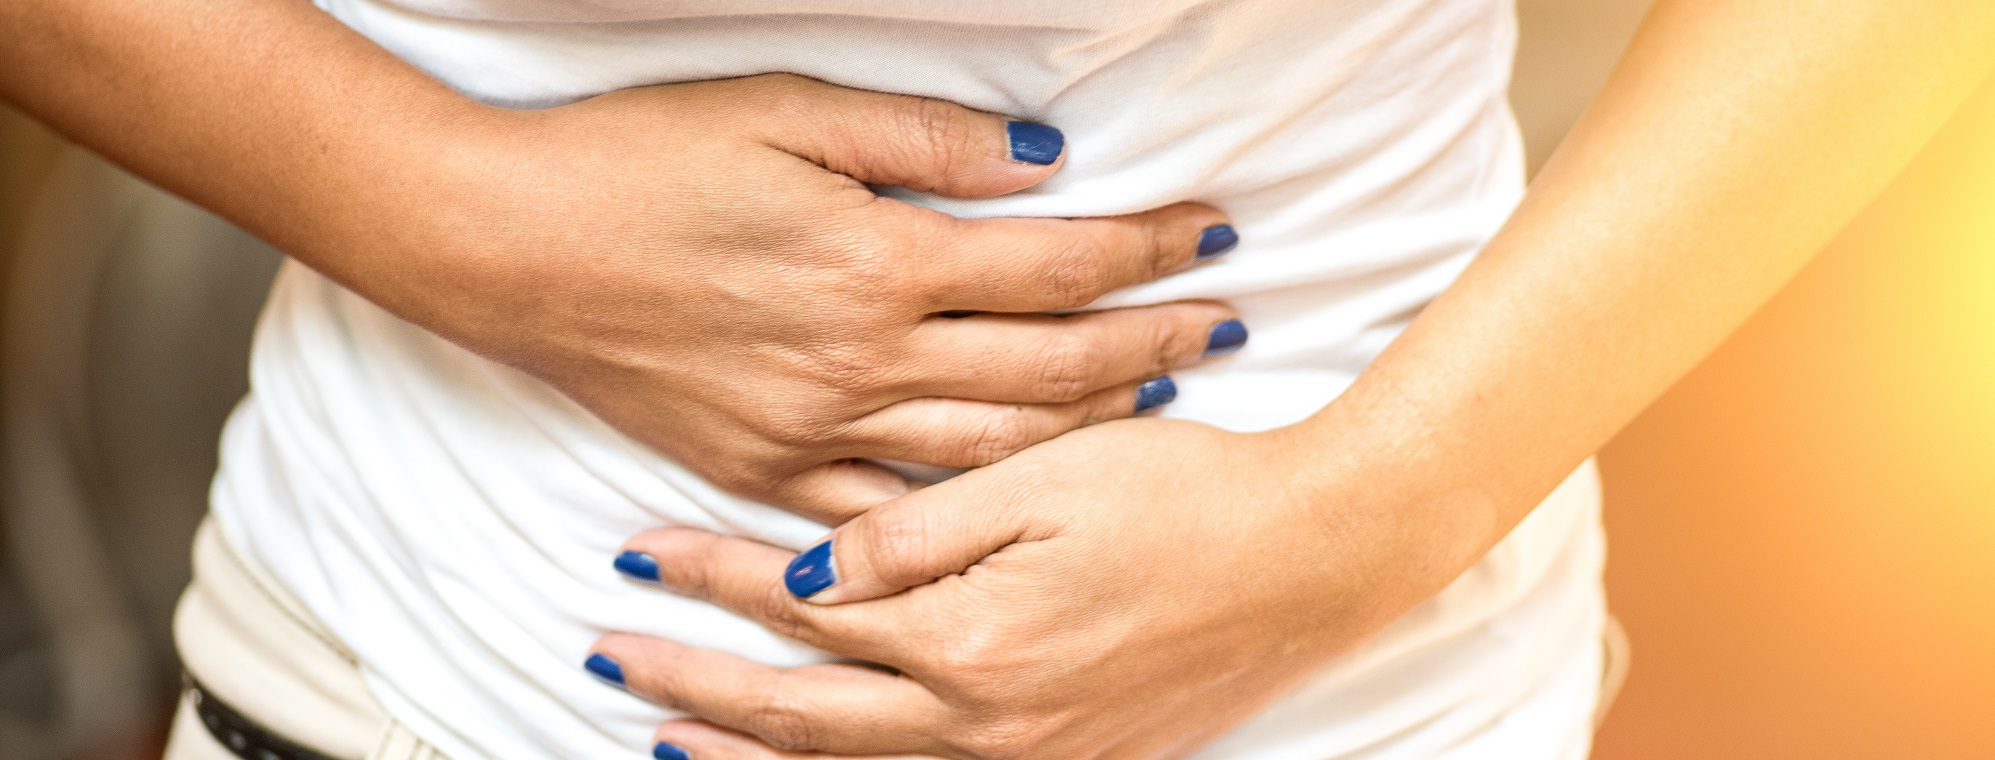 Swelling Before Period What Causes It How To Reduce Period Bloating